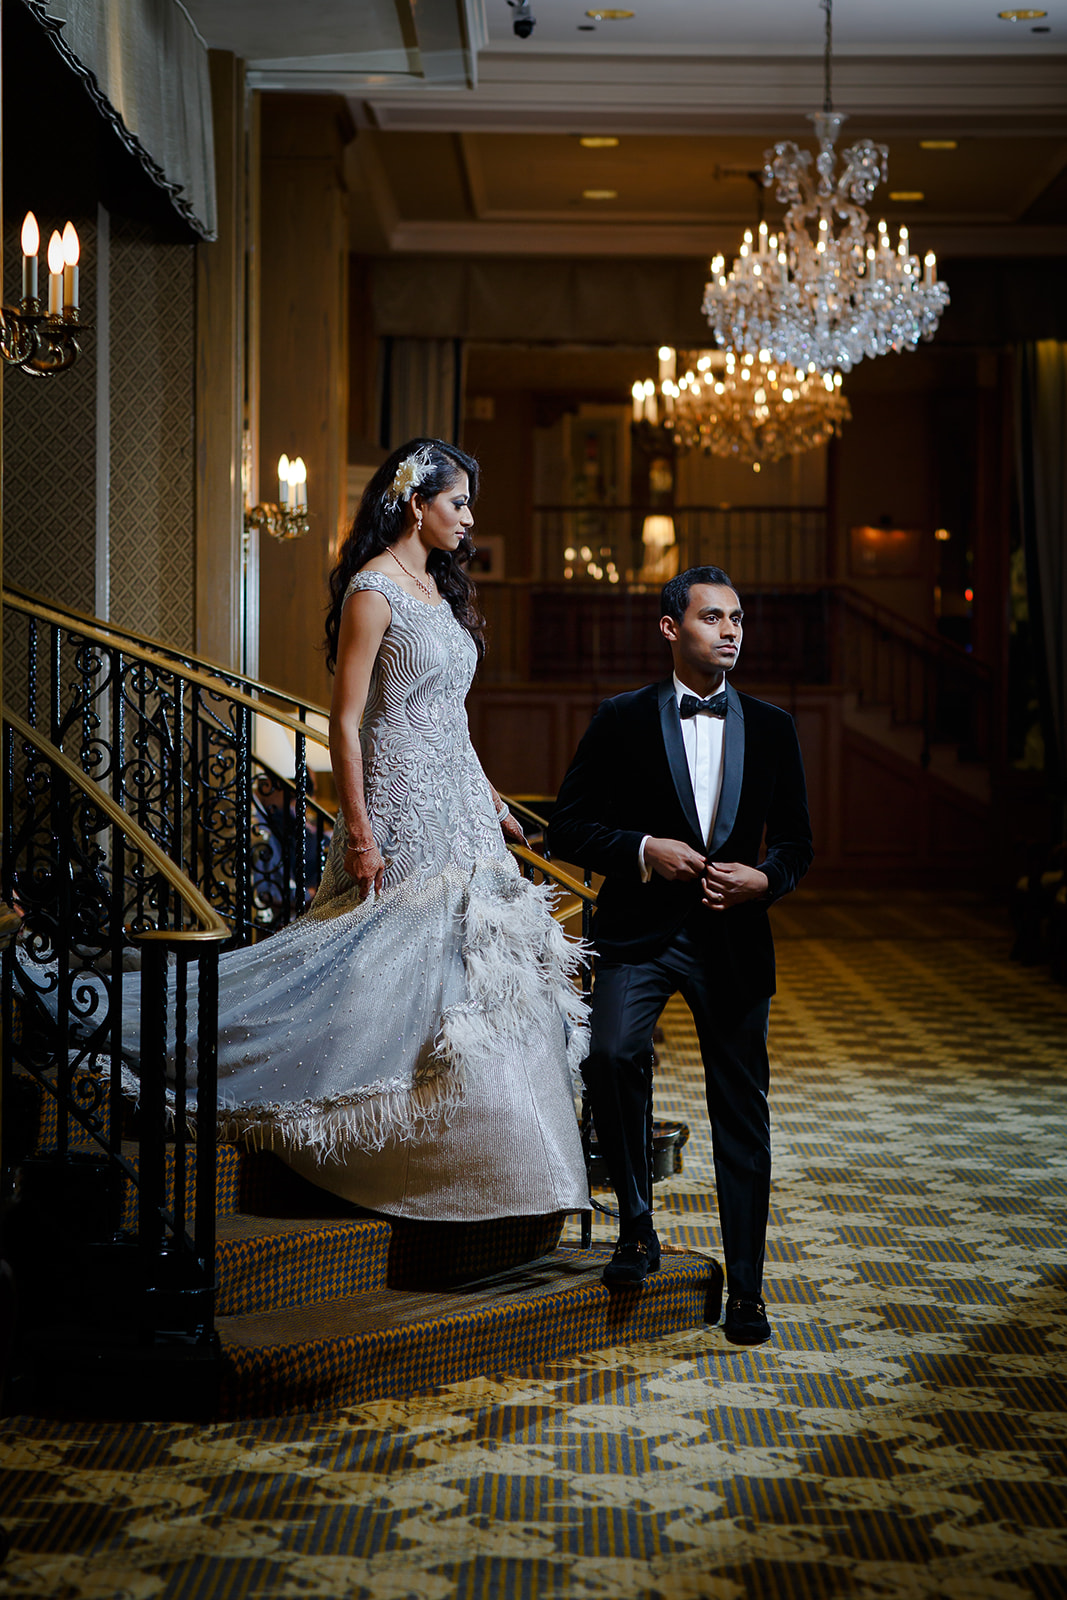 The couple dressed to the nines for the dinner reception. We had a chance to do some Vanity Fair style portraits with the two of them before dinner inside the Drake, making use of the ornate details of the hotel's design like the staircases and chandeliers.